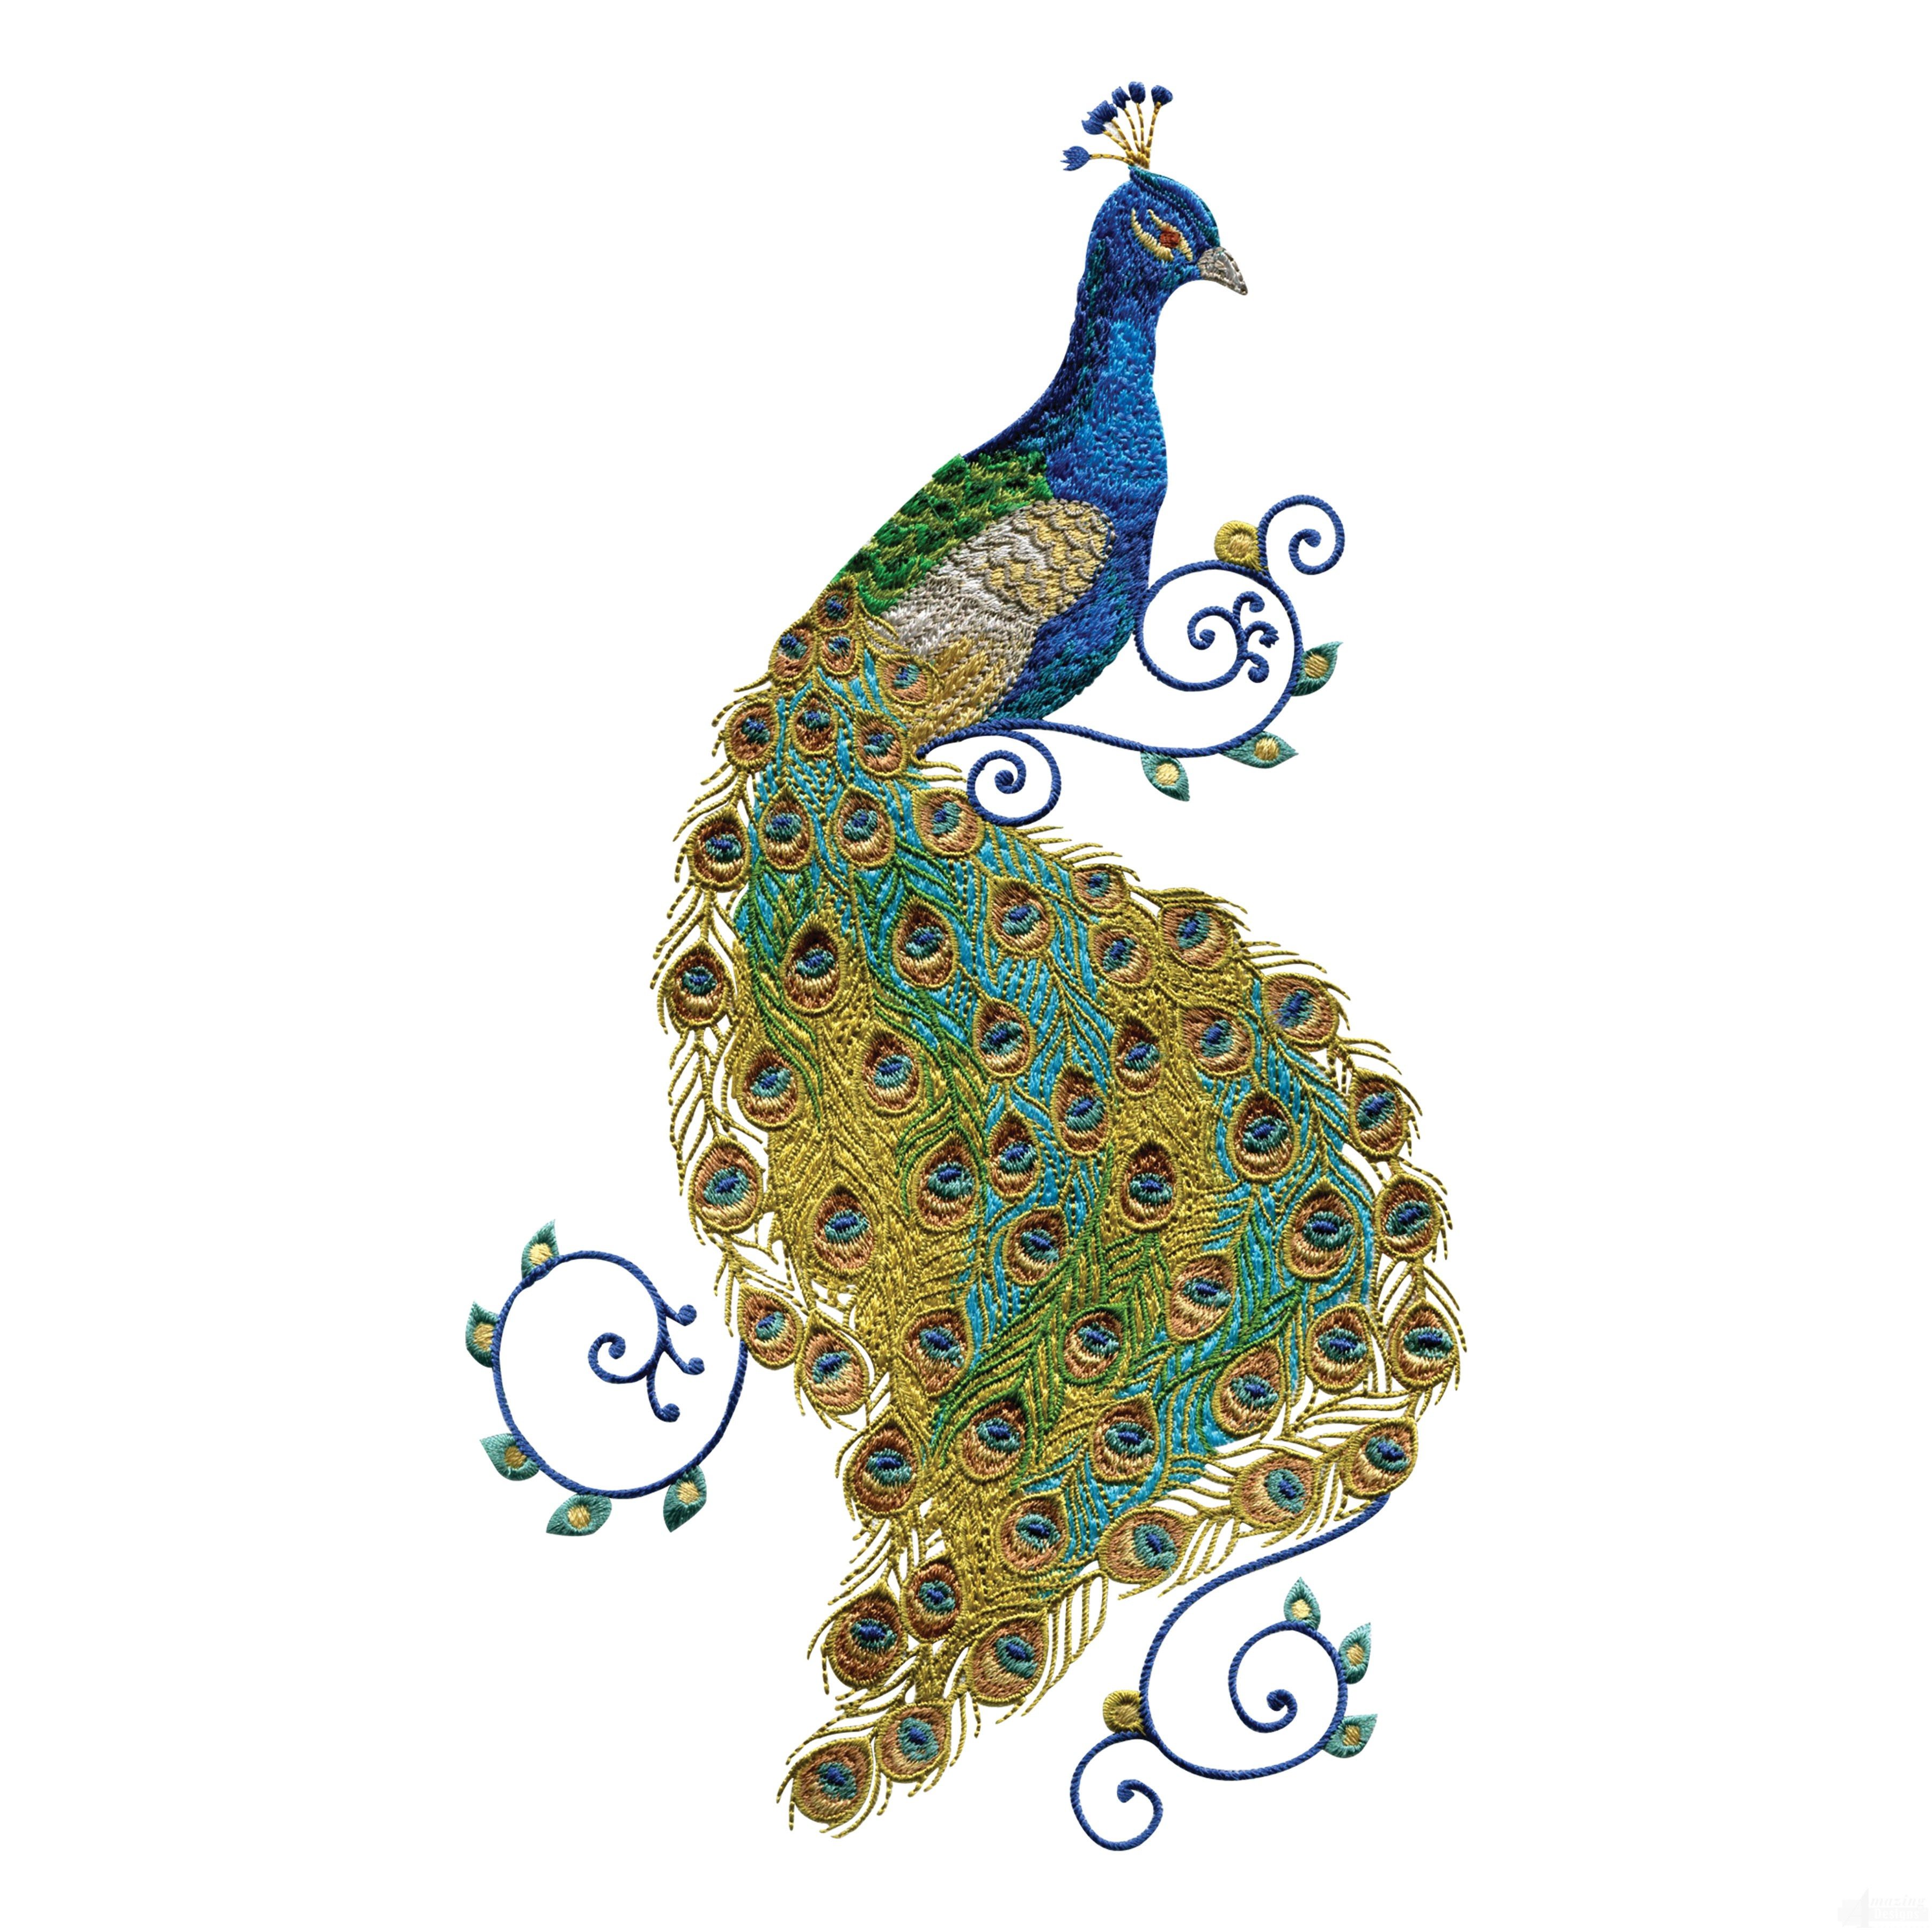 swnpa136 peacock embroidery design Zoo Animal Clip Art free clipart for digitizing embroidery